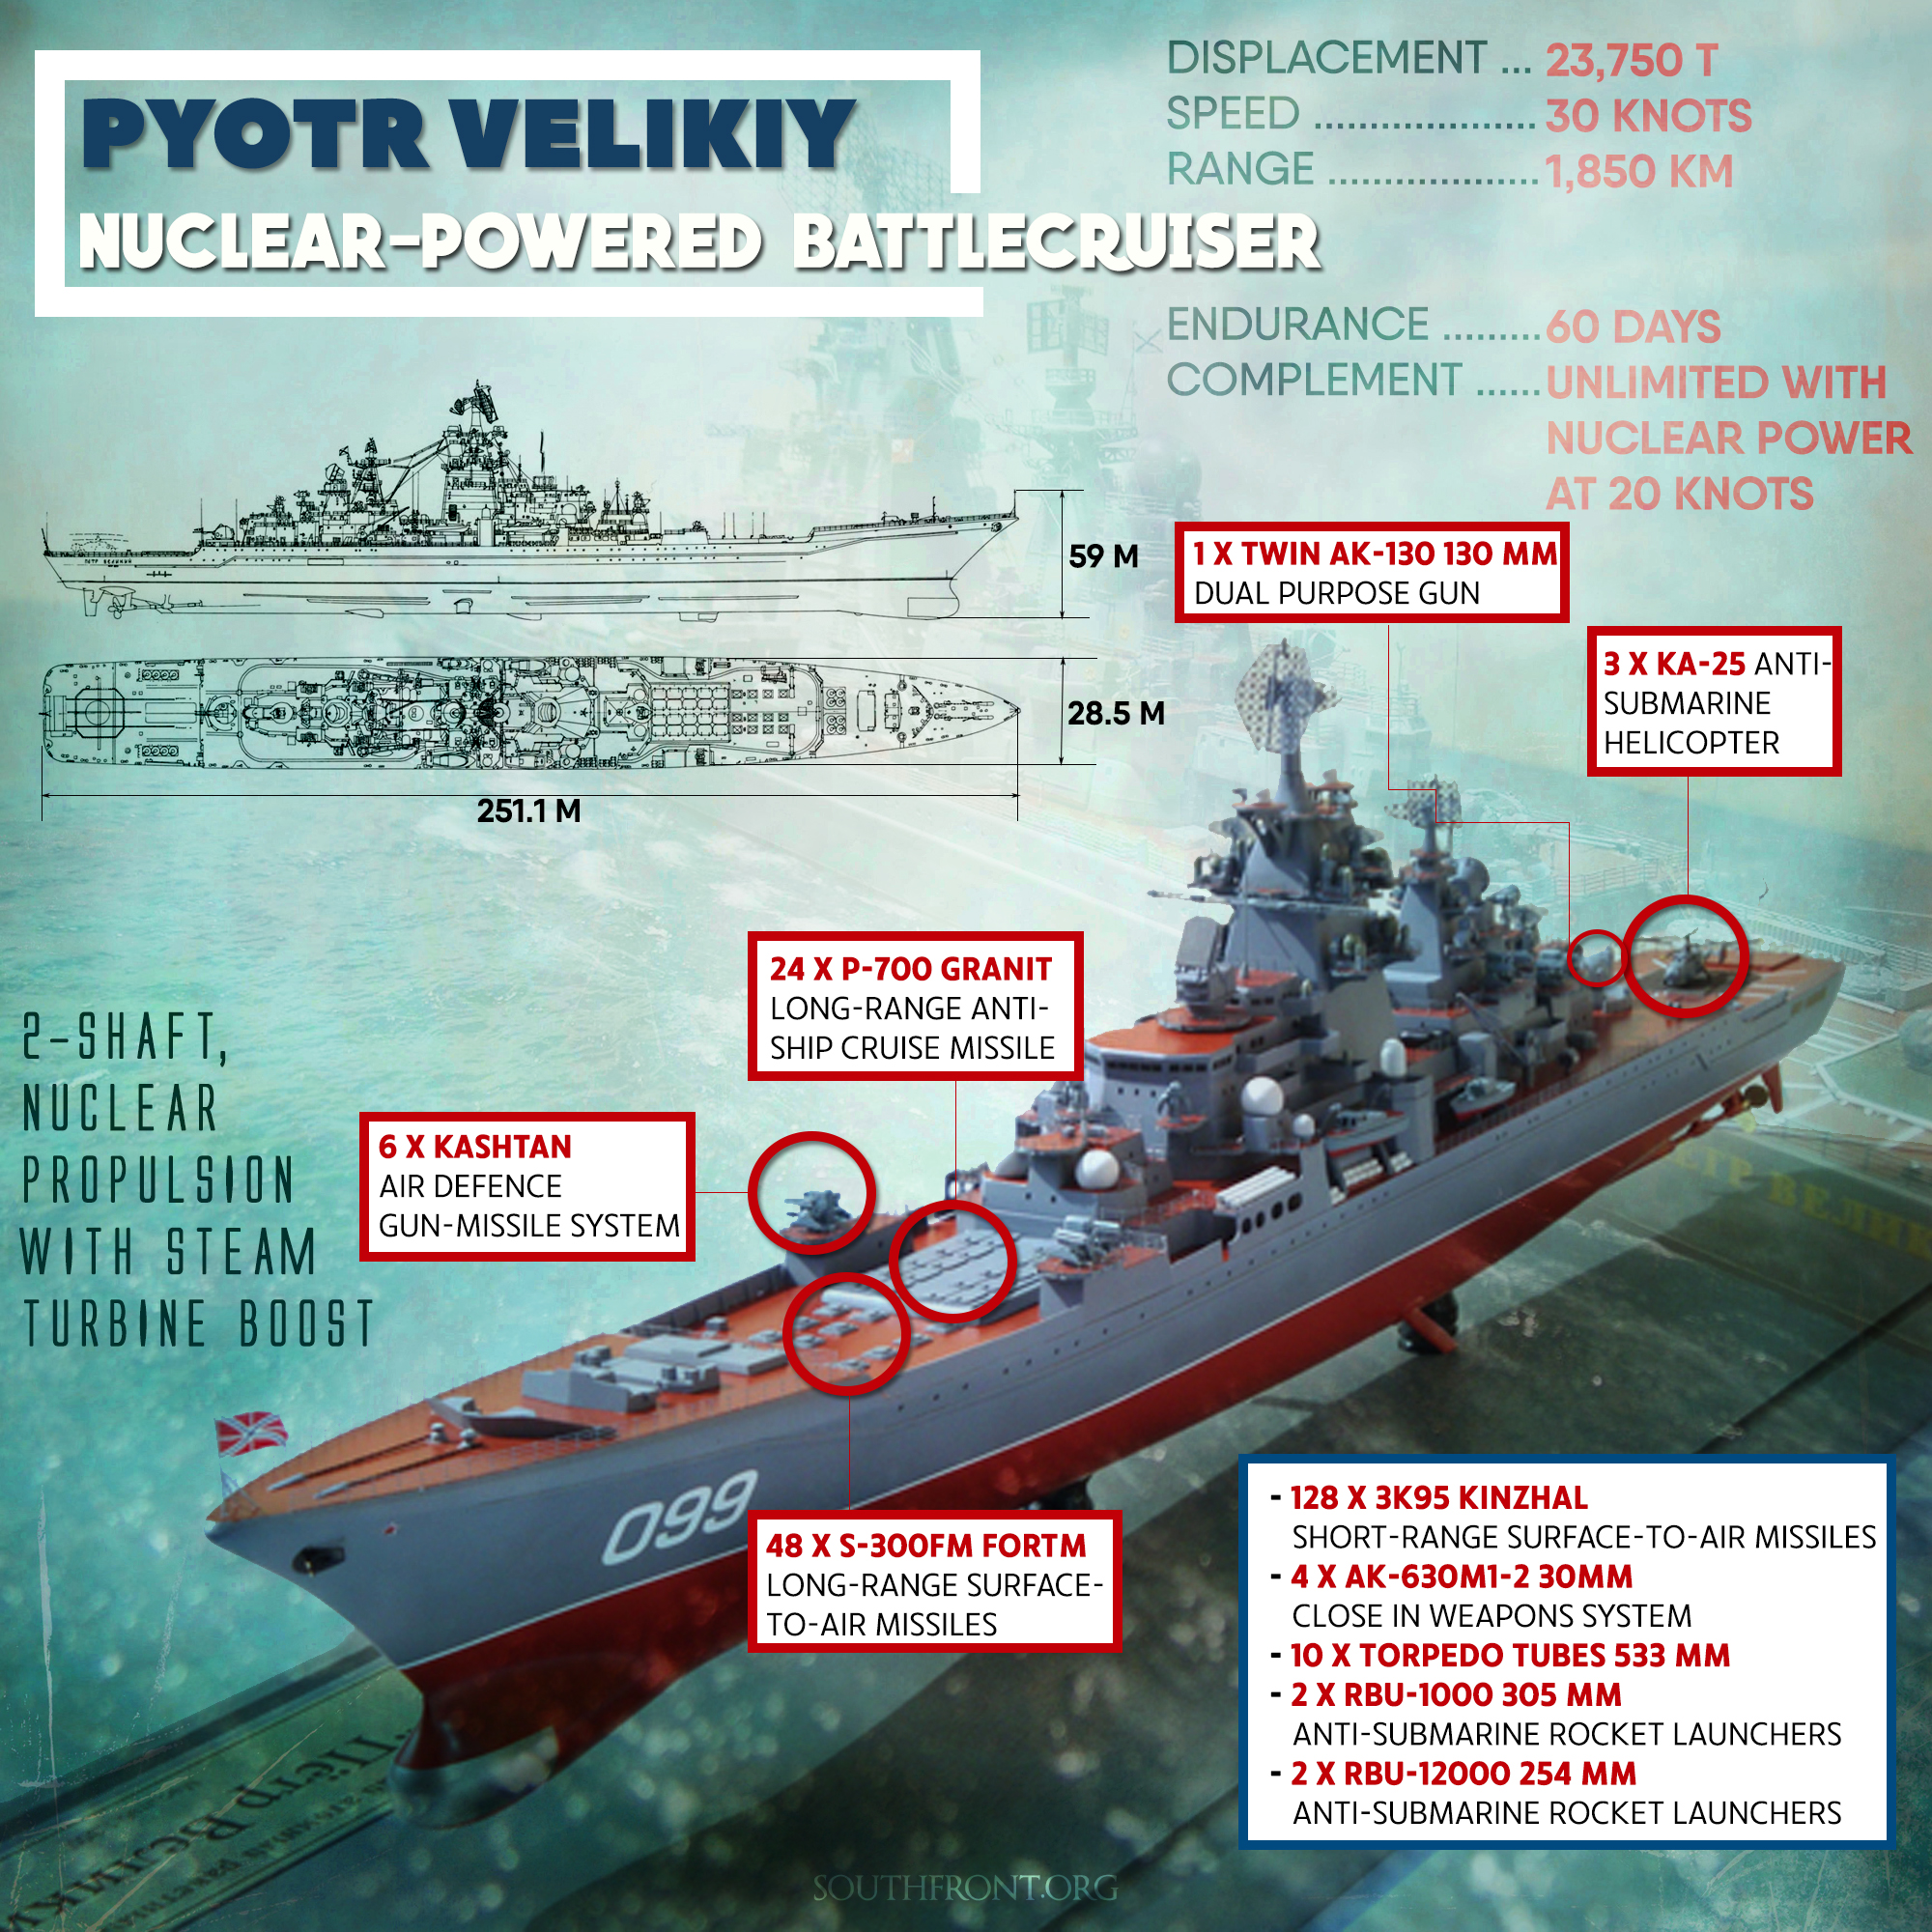 Sailor's Selfie Allowed to Geolocate Russia's Nuclear-Powered Battlecruiser